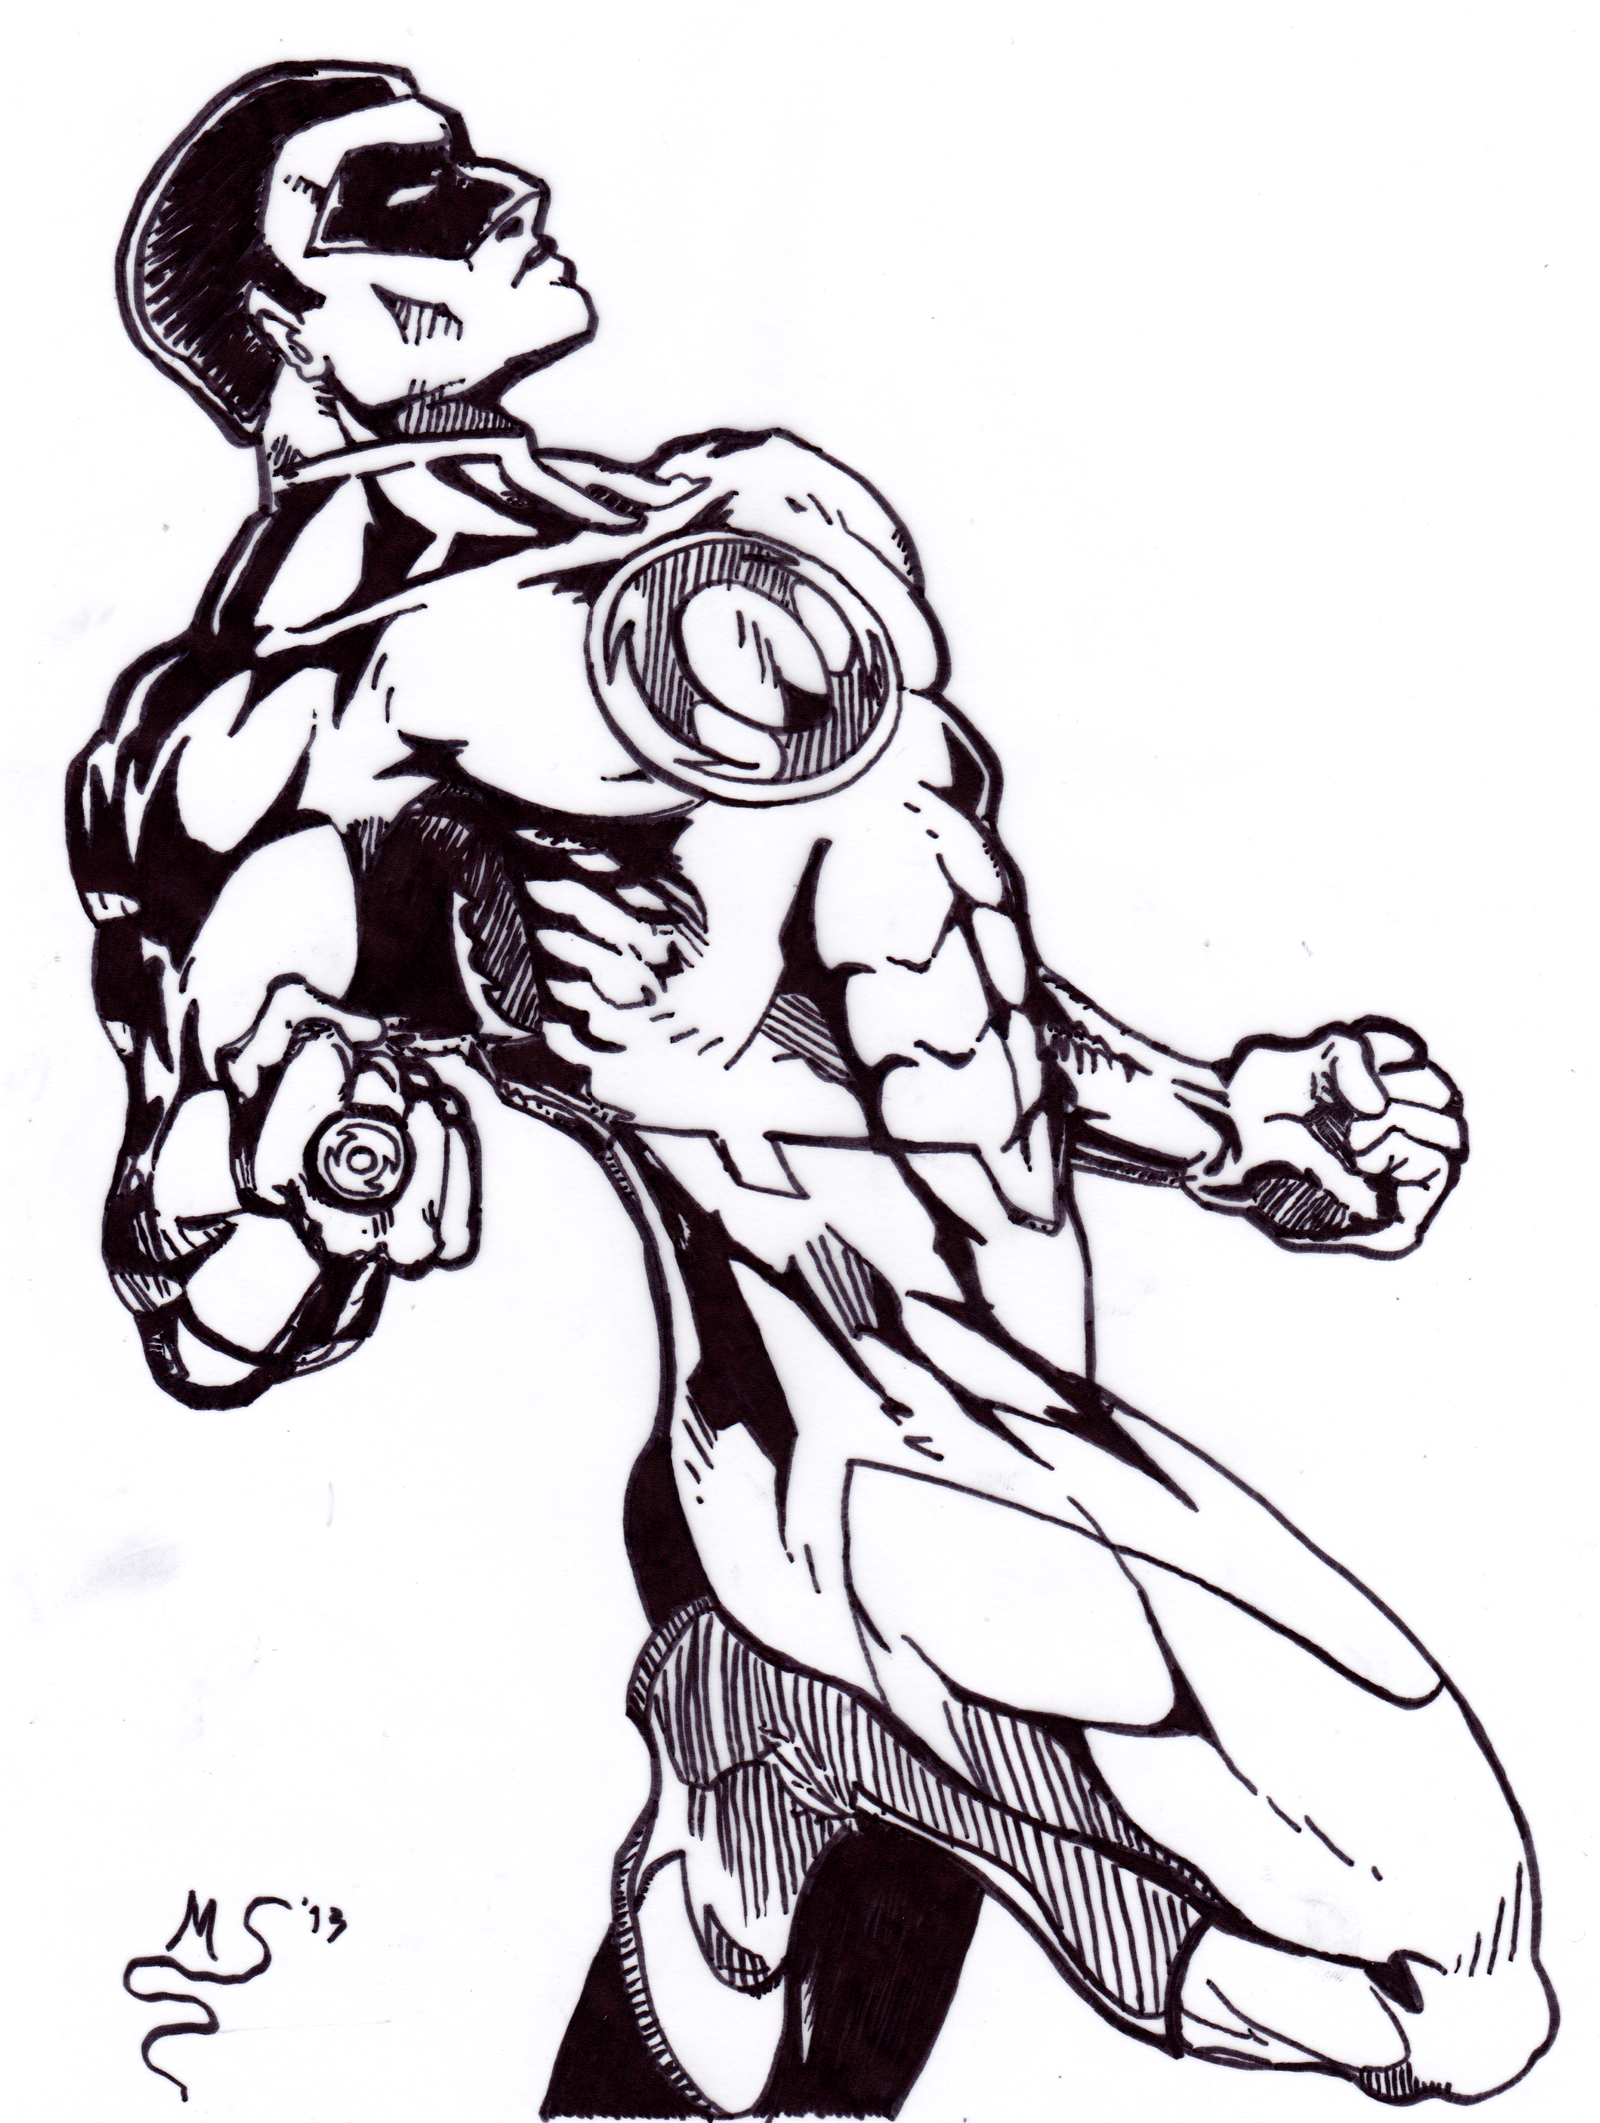 john stewart the green lantern inks by blackn yellow on deviantart